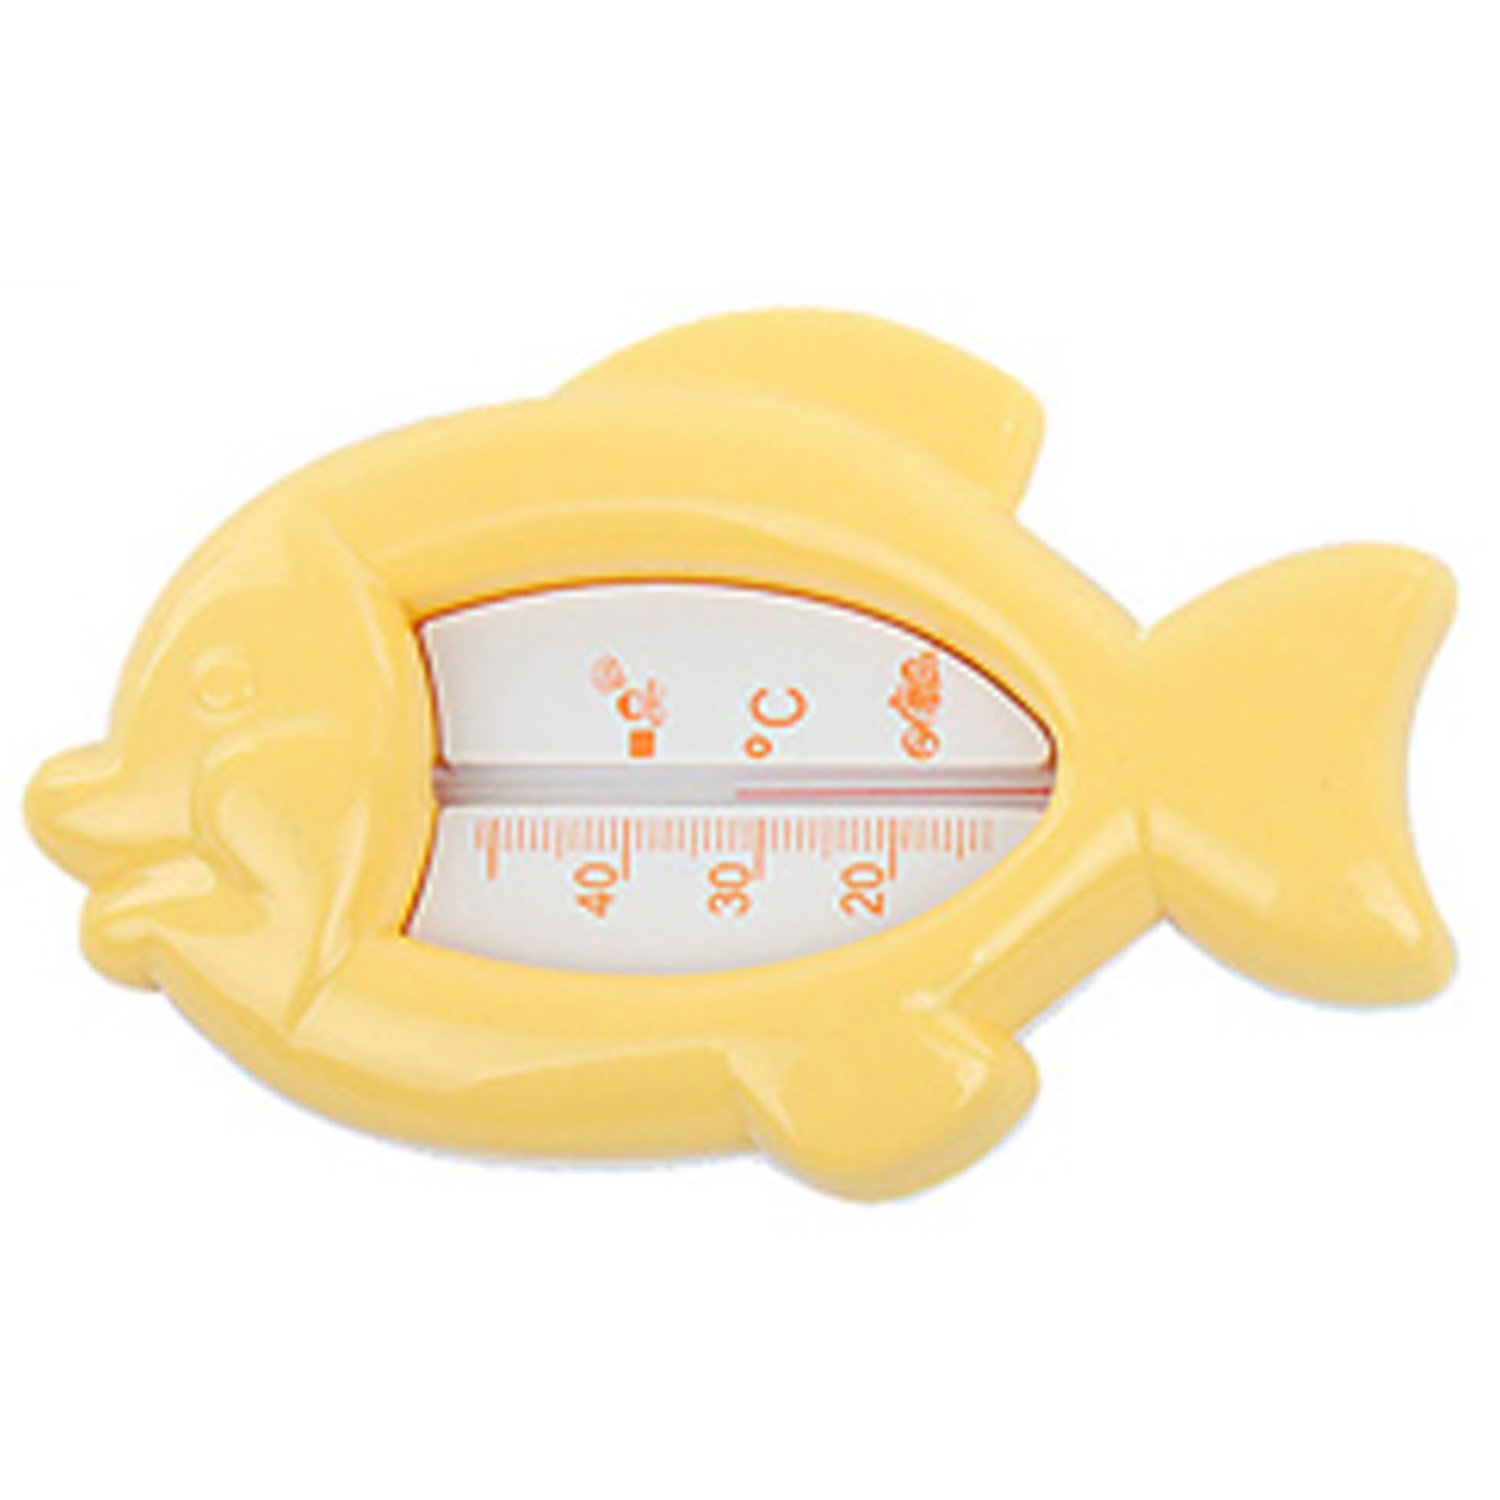 LSQtronics baby fish bath thermometers/indoor thermometer, RK3642(yellow)